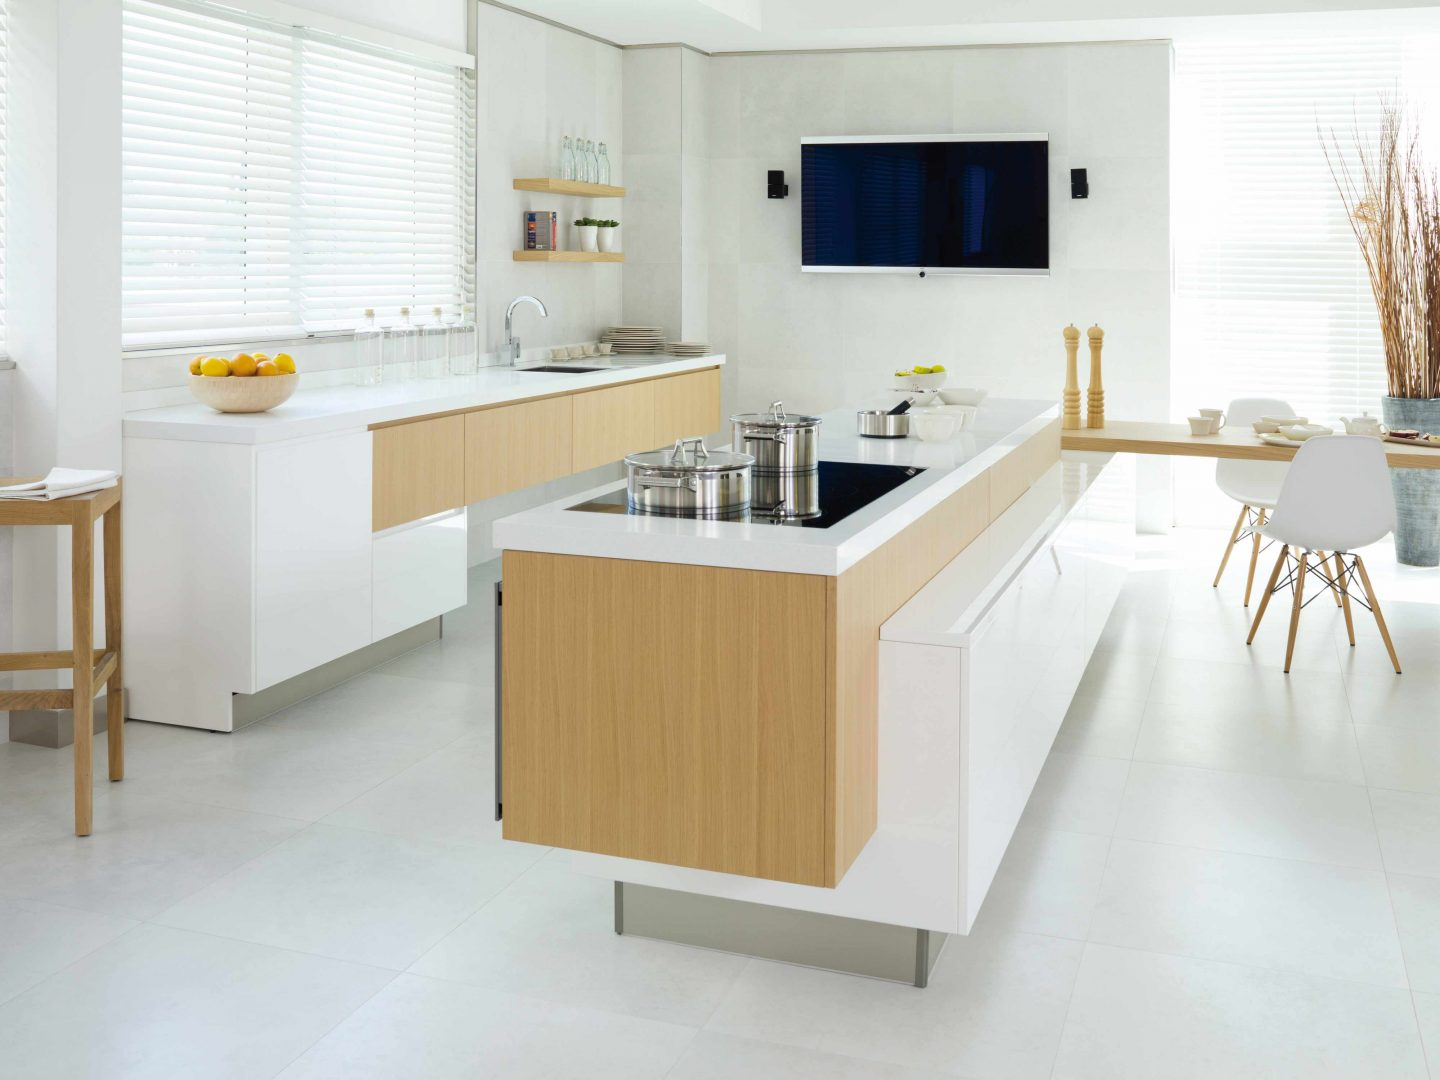 hok-measuraments-kitchen